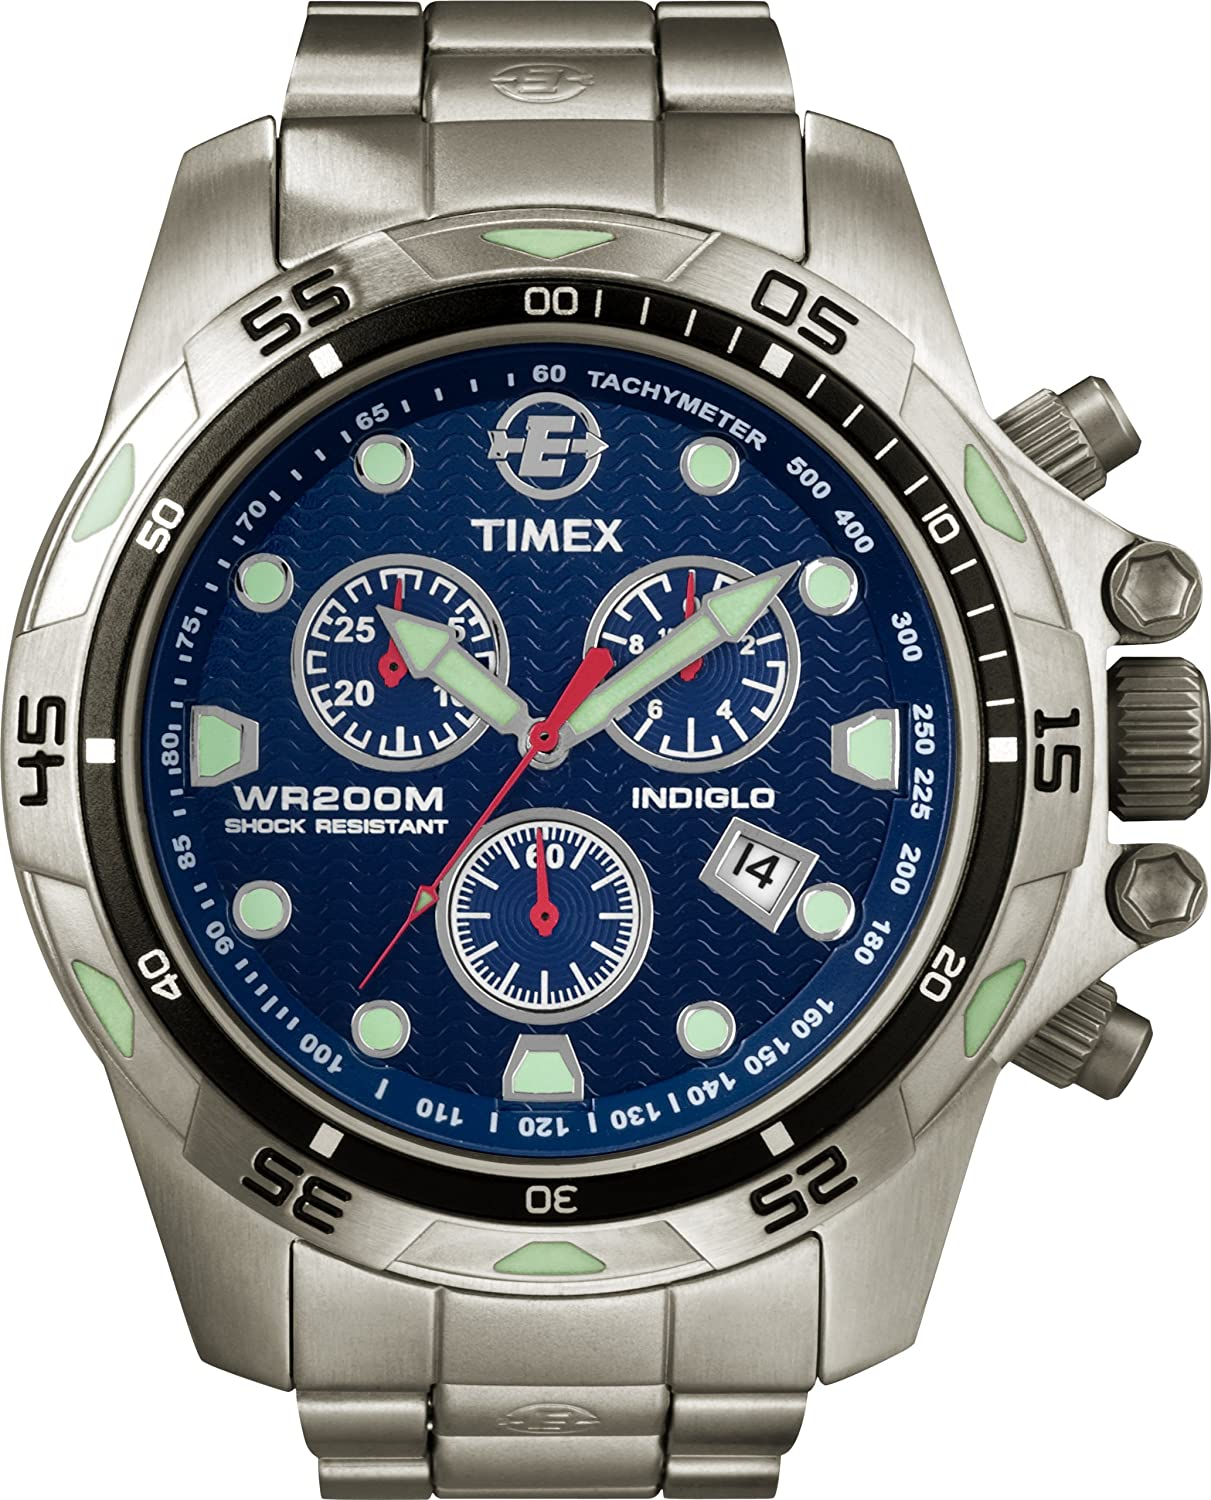 amazon com timex men s t49799 expedition dive style stainless amazon com timex men s t49799 expedition dive style stainless steel blue dial watch timex watches